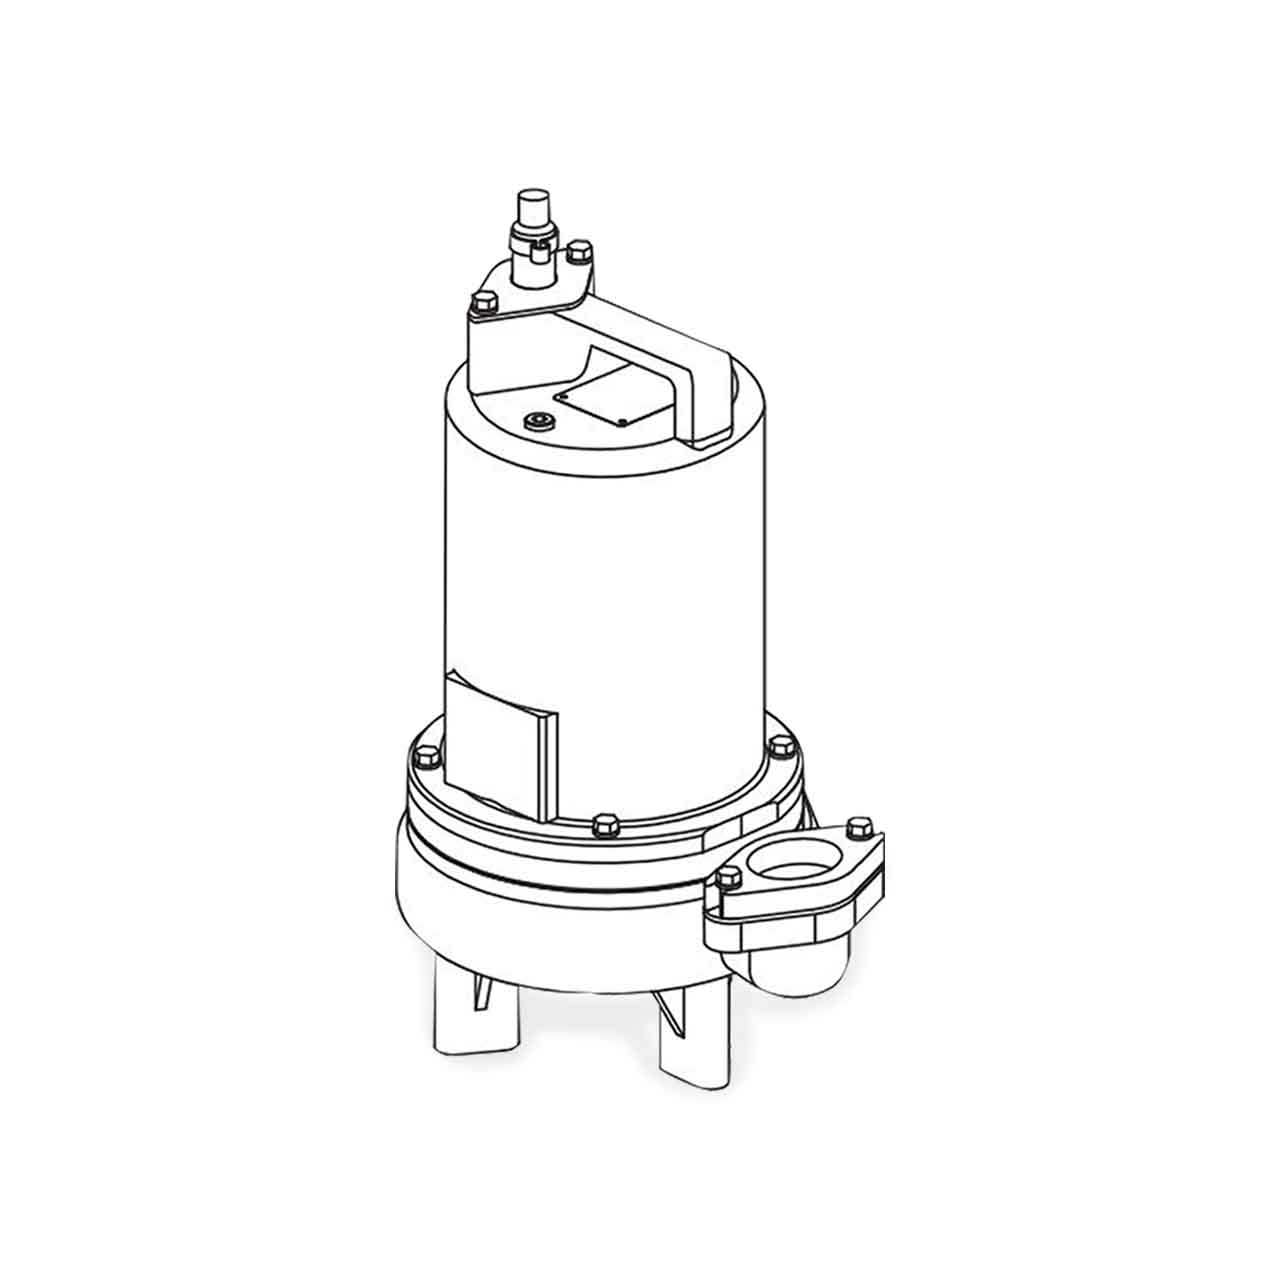 hight resolution of barnes barnes 2sev1044l submersible sewage ejector pump 1 0 hp 460v 3ph 20 cord manual brn104938